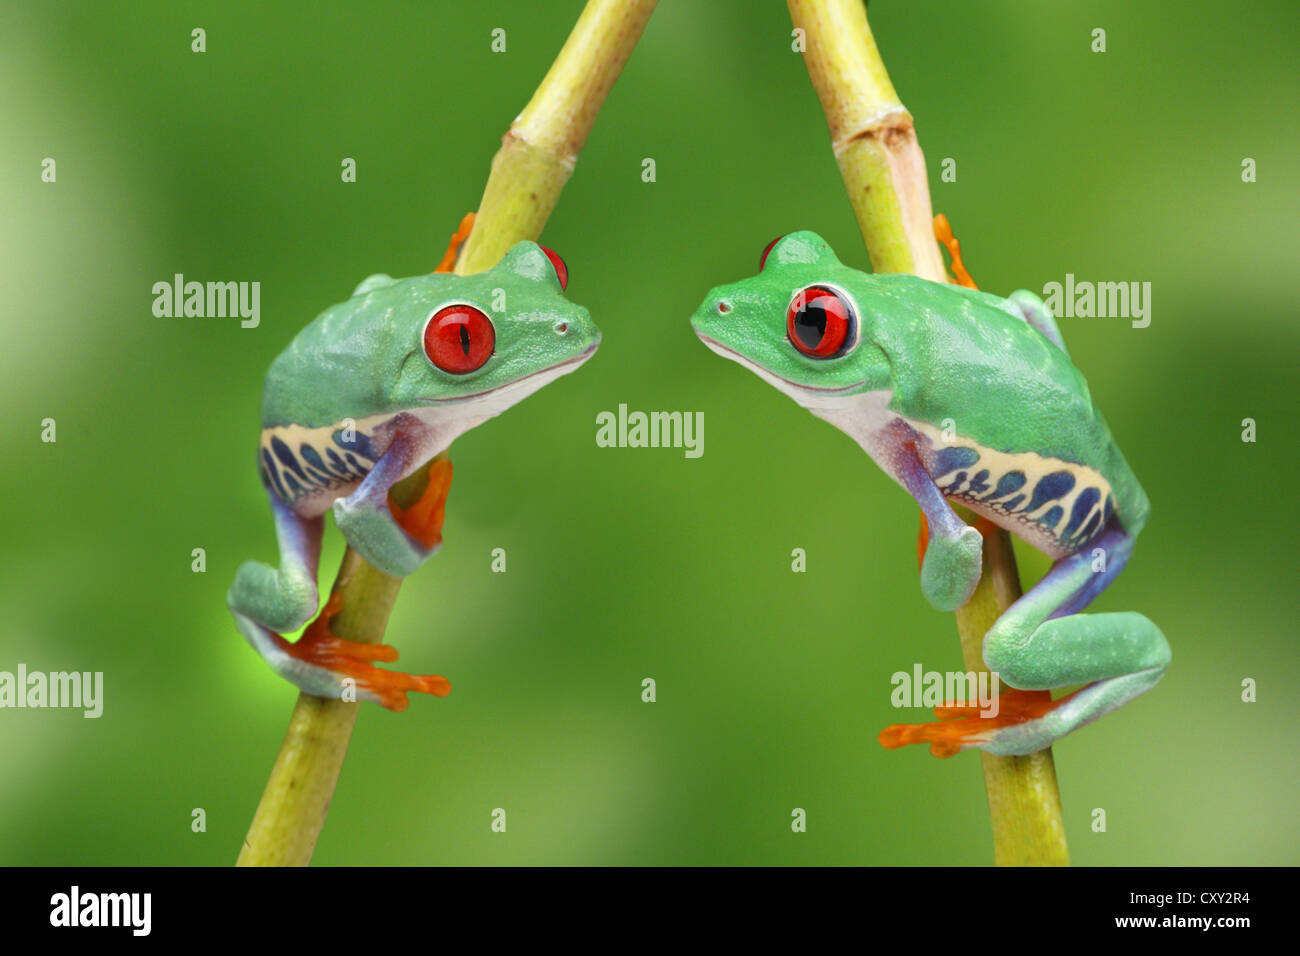 Red-eyed treefrogs (Agalychnis callidryas) sitting on a branch opposite each other, in love - Stock Image